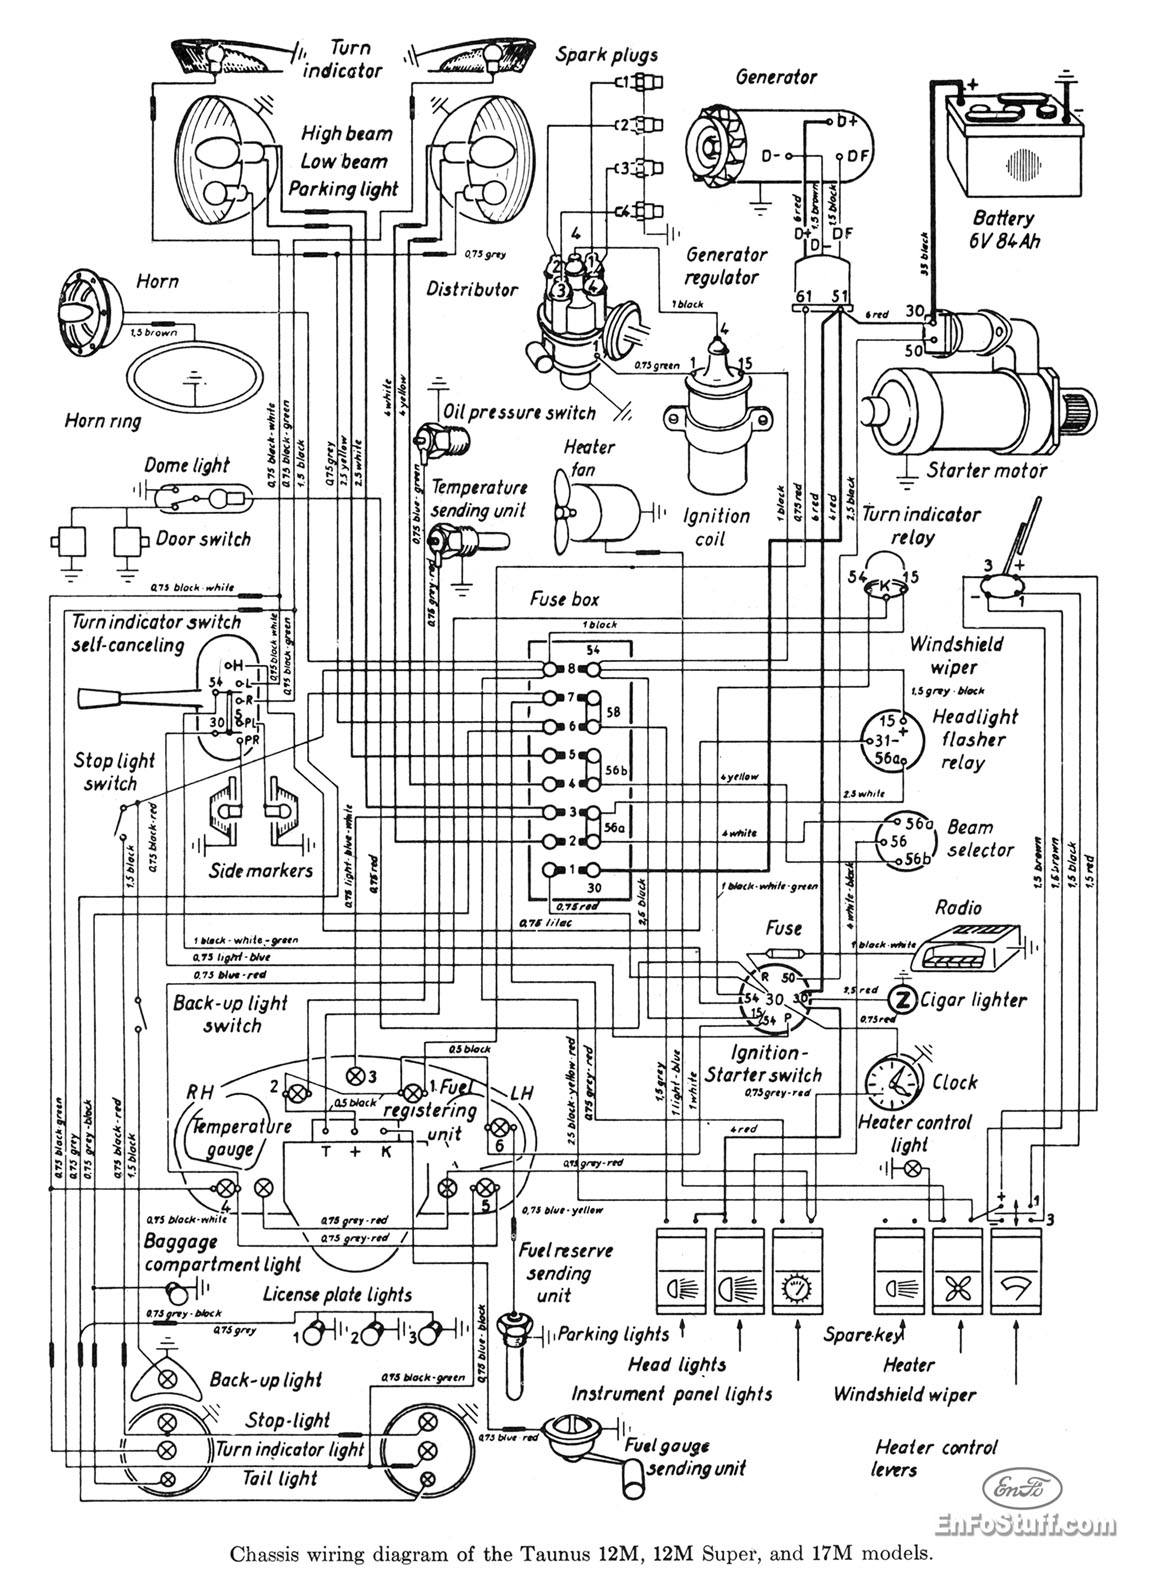 Mercedes W169 Wiring Diagram Circuit Symbols A160 For Taunus 12m Super And 17m Models Rh Enfostuff Com A Class W168